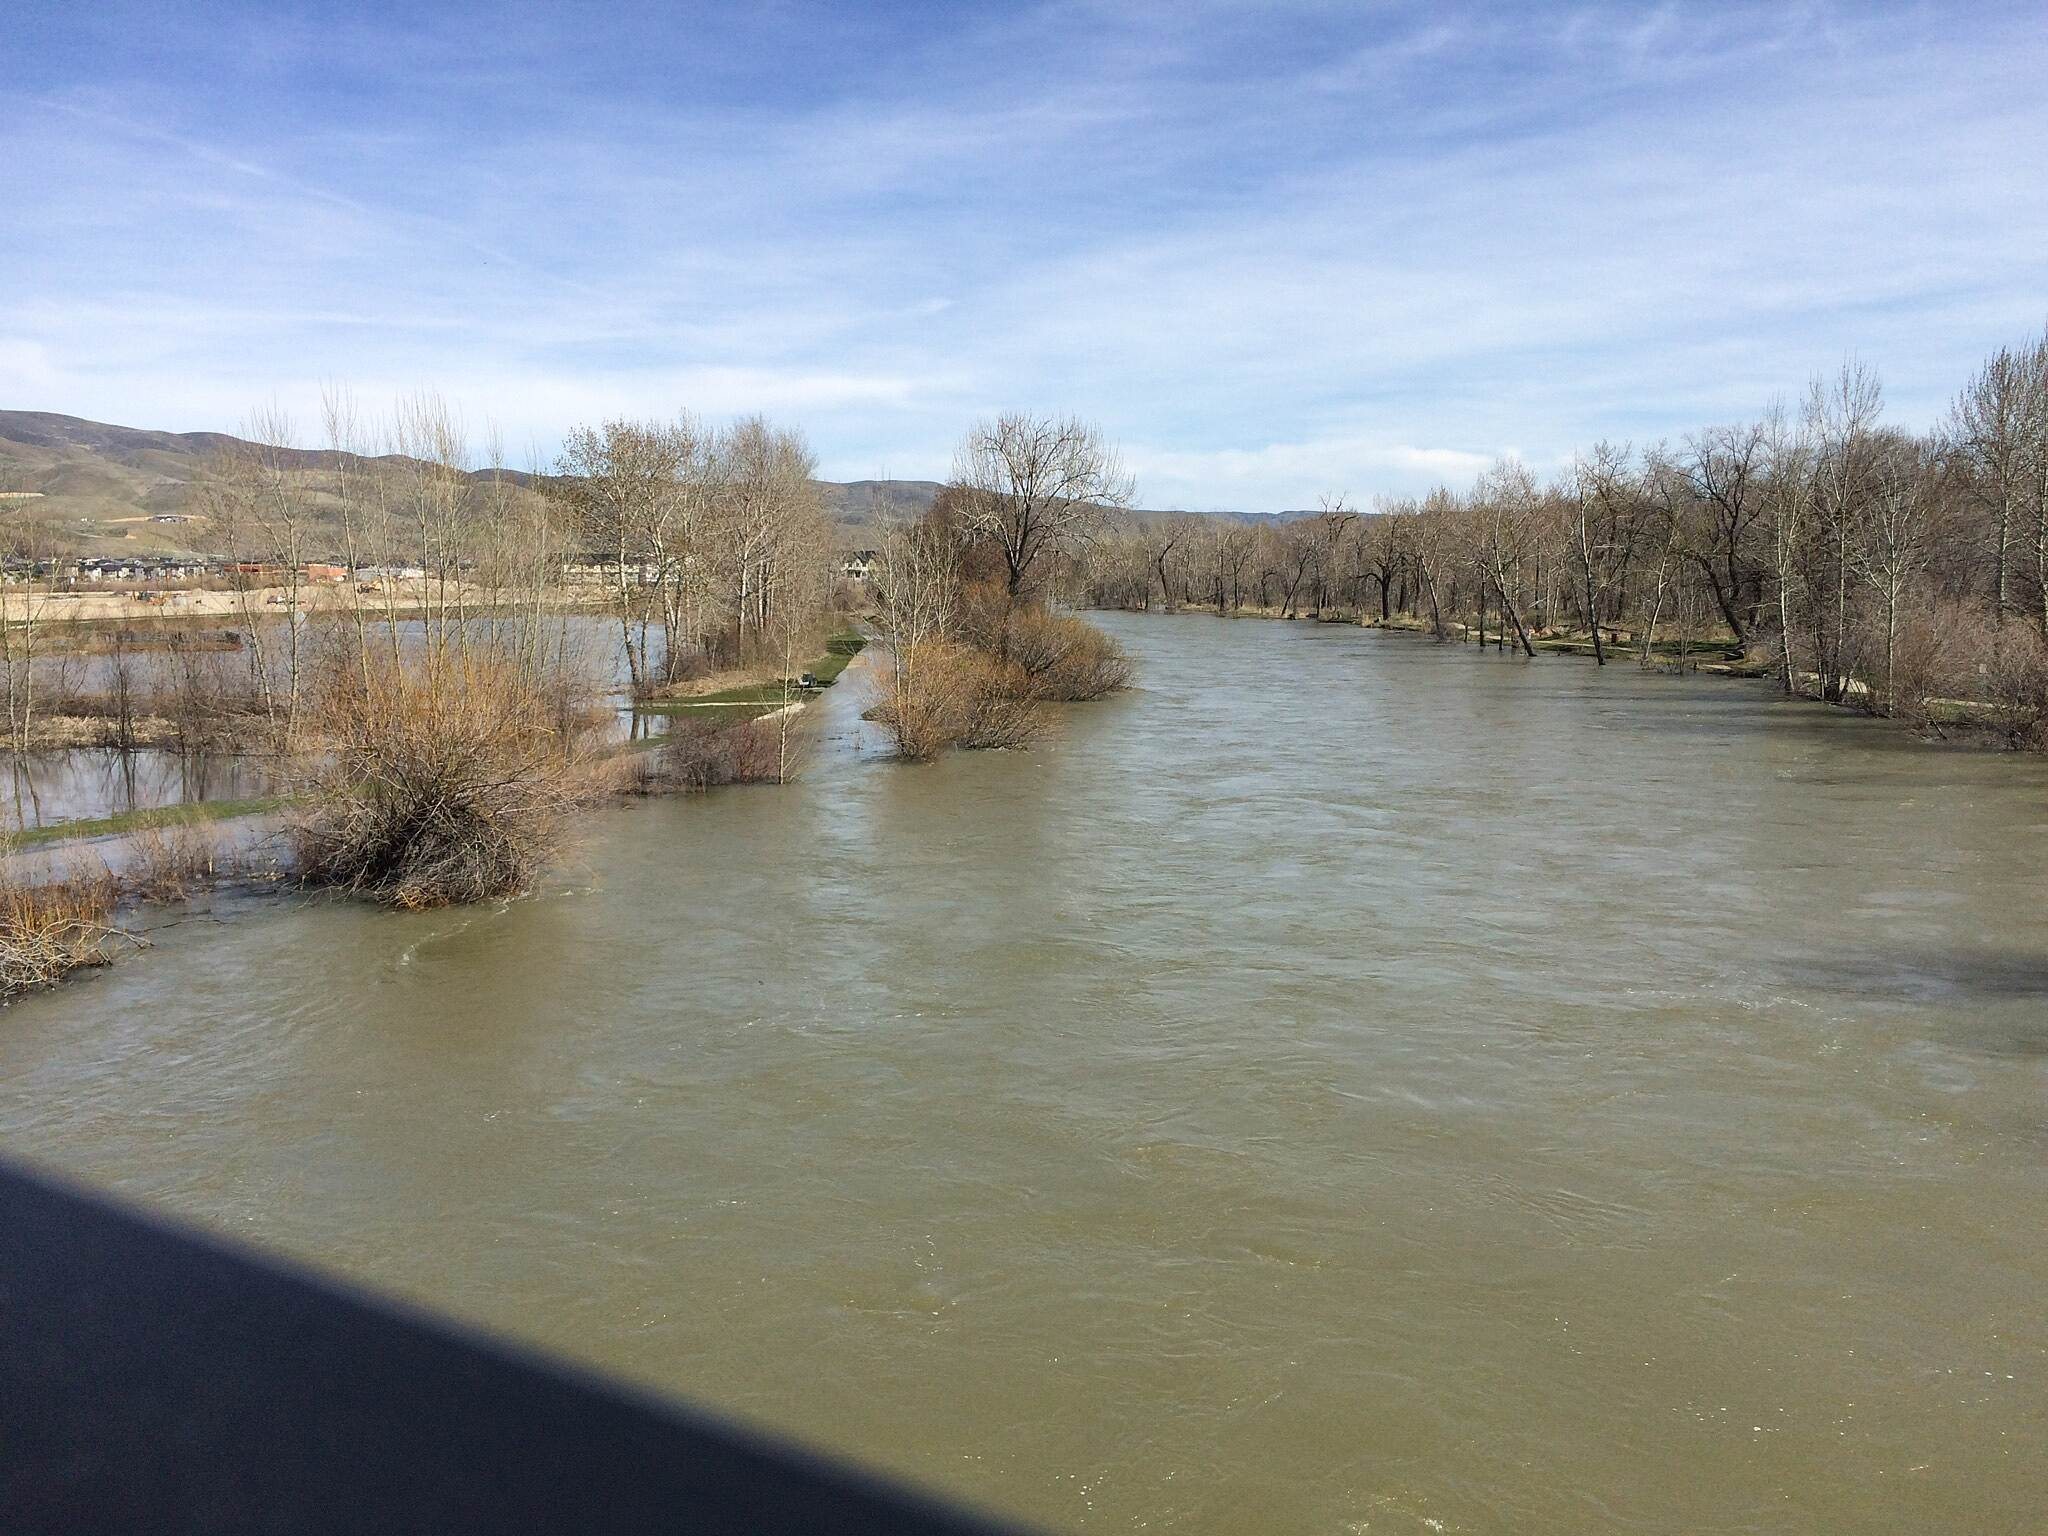 Boise River Greenbelt Boise Greenbelt closed for over half its length Boise Greenbelt from Parkcenter Blvd bridge.  Federal water managers warn over 70% of the 40 mile long trail could remain flooded through June due to record snow pack in the Boise River drainages.